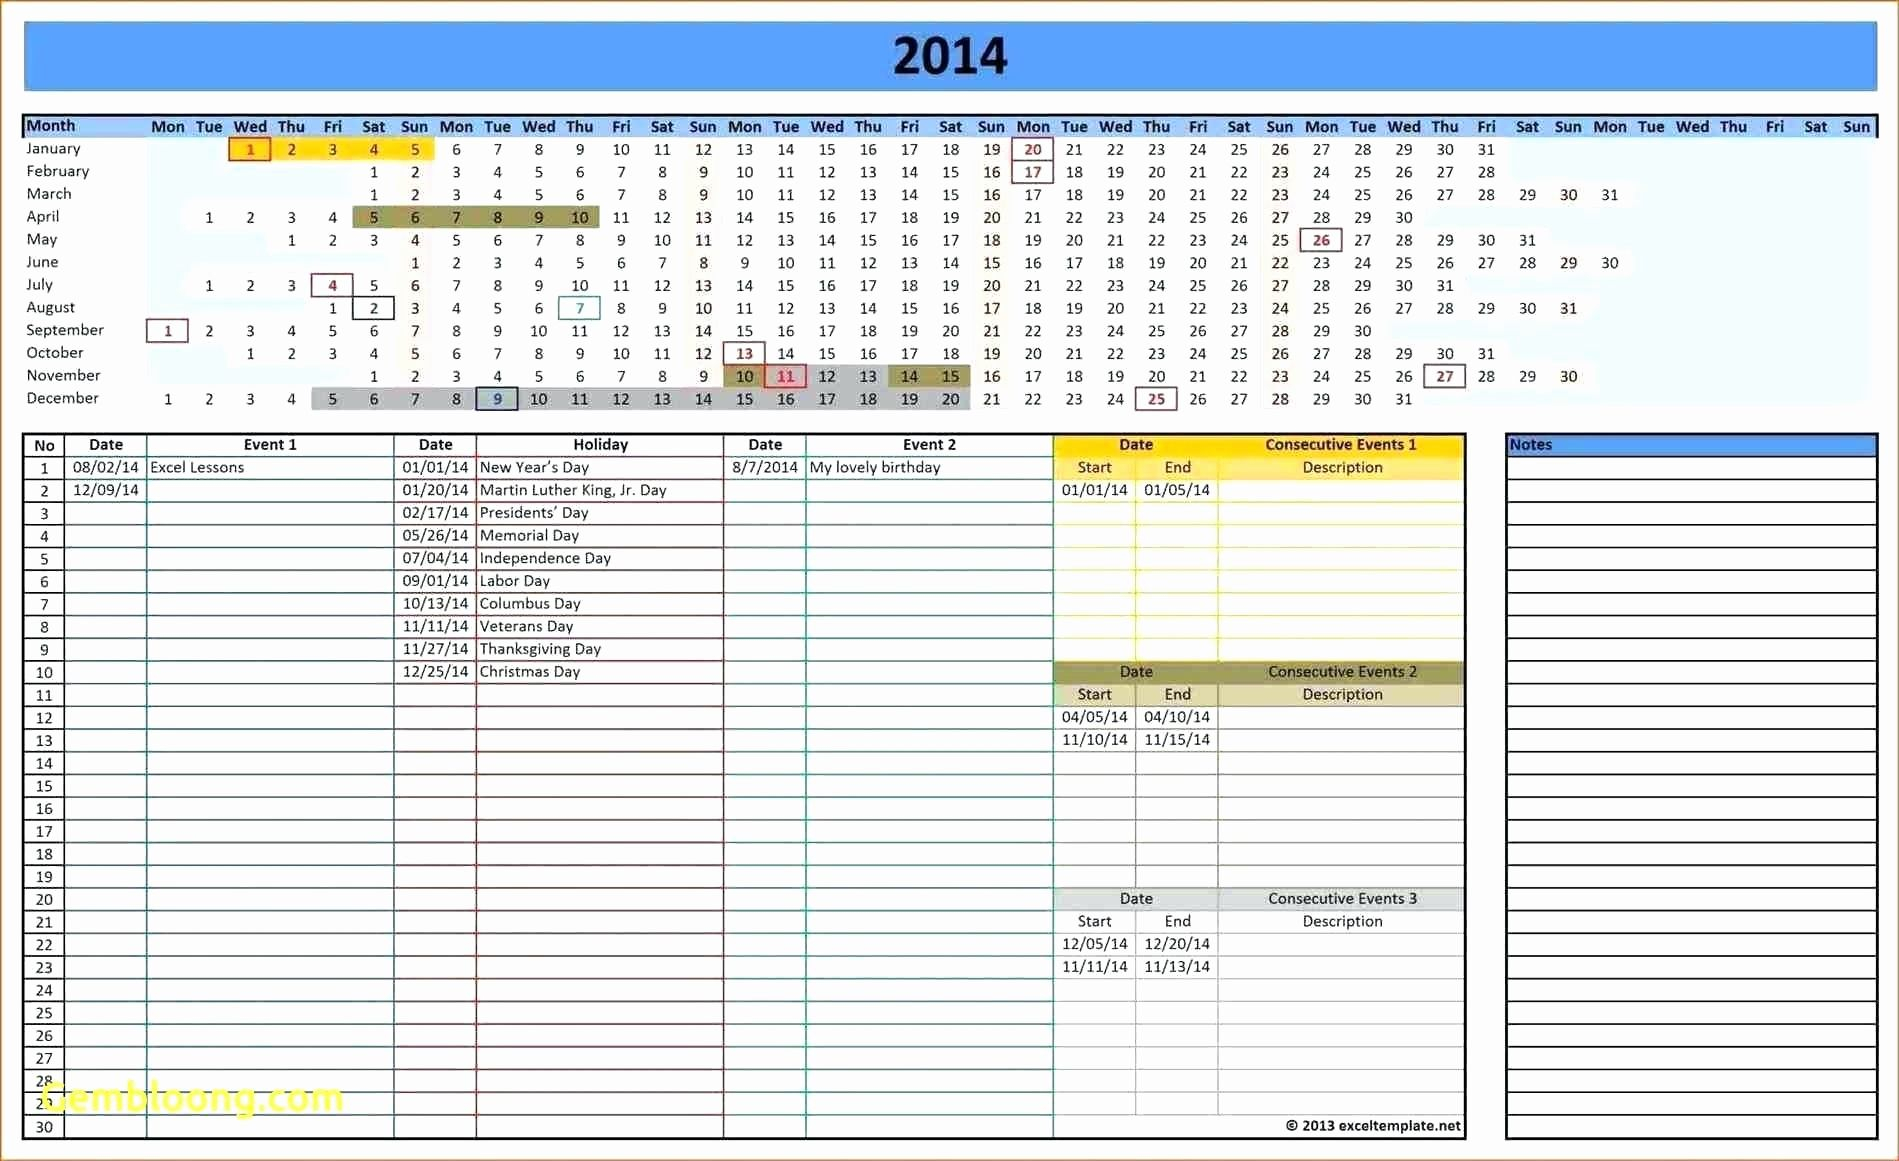 Payroll Spreadsheet For Small Business In Payroll Spreadsheet For Small Business As Well As Payroll